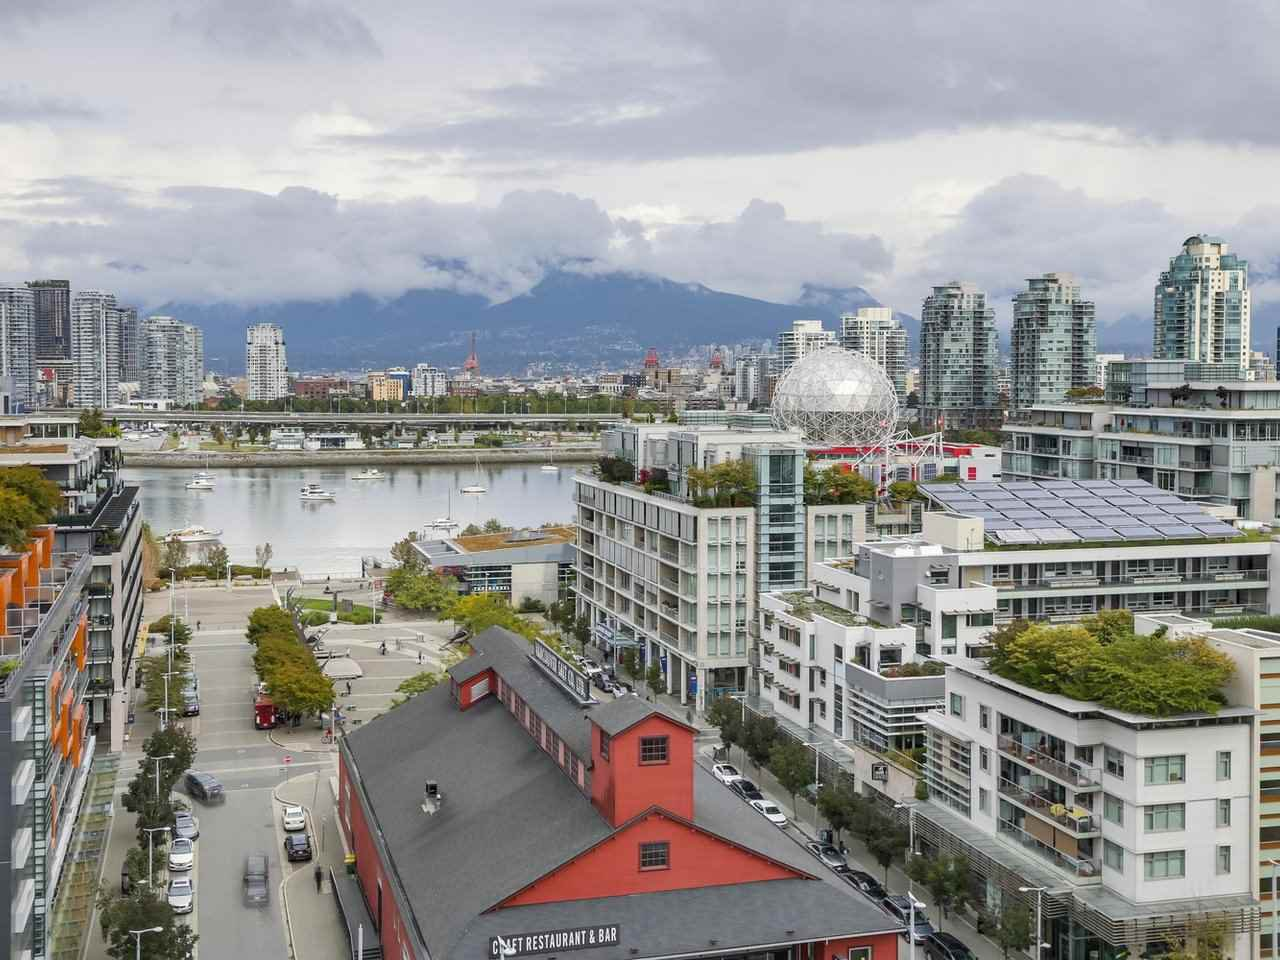 """Main Photo: 1603 1783 MANITOBA Street in Vancouver: False Creek Condo for sale in """"The West"""" (Vancouver West)  : MLS®# R2308129"""